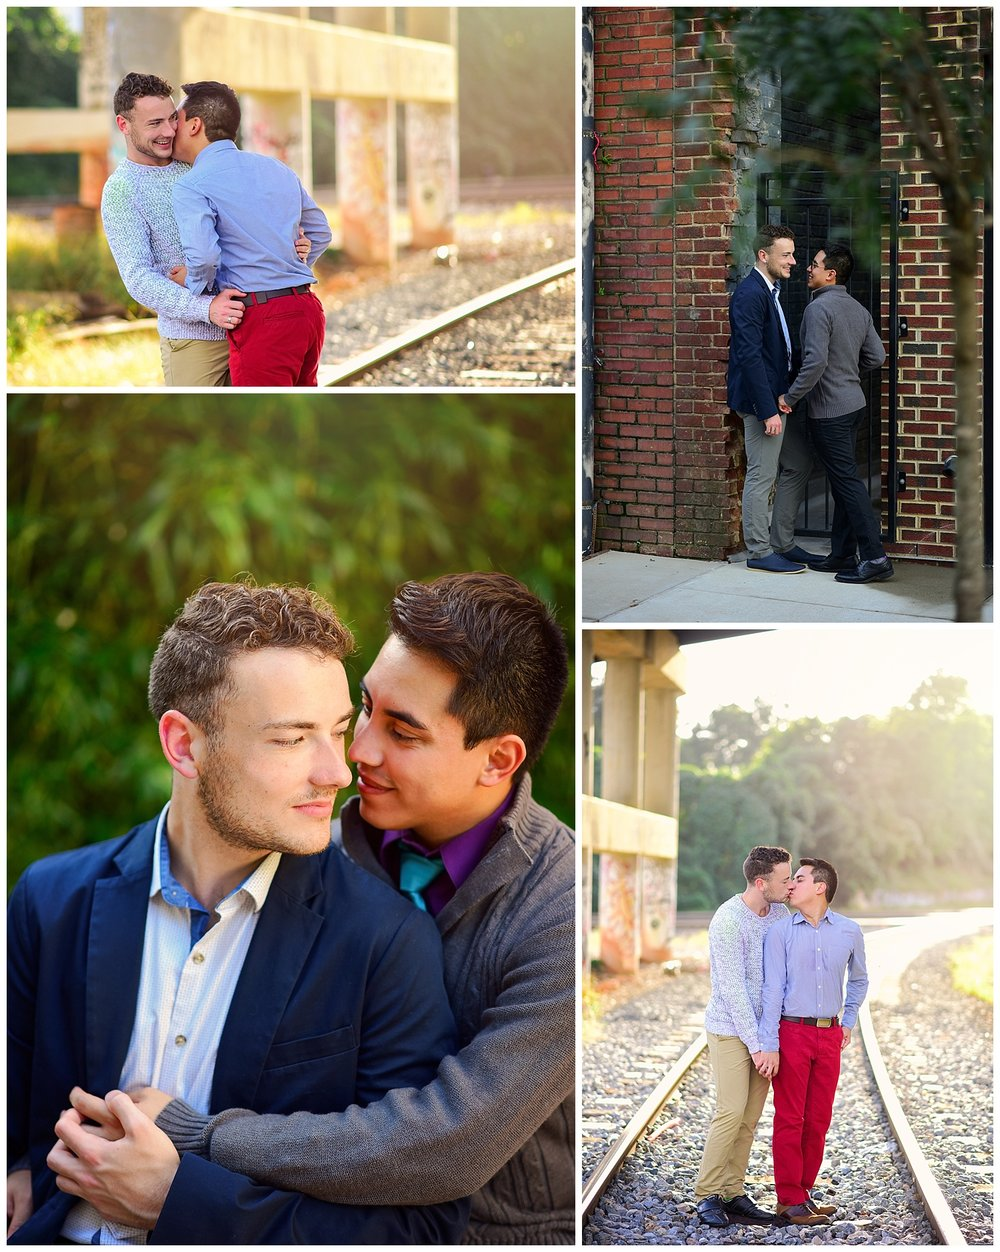 LGBTQ couple downtown raleigh